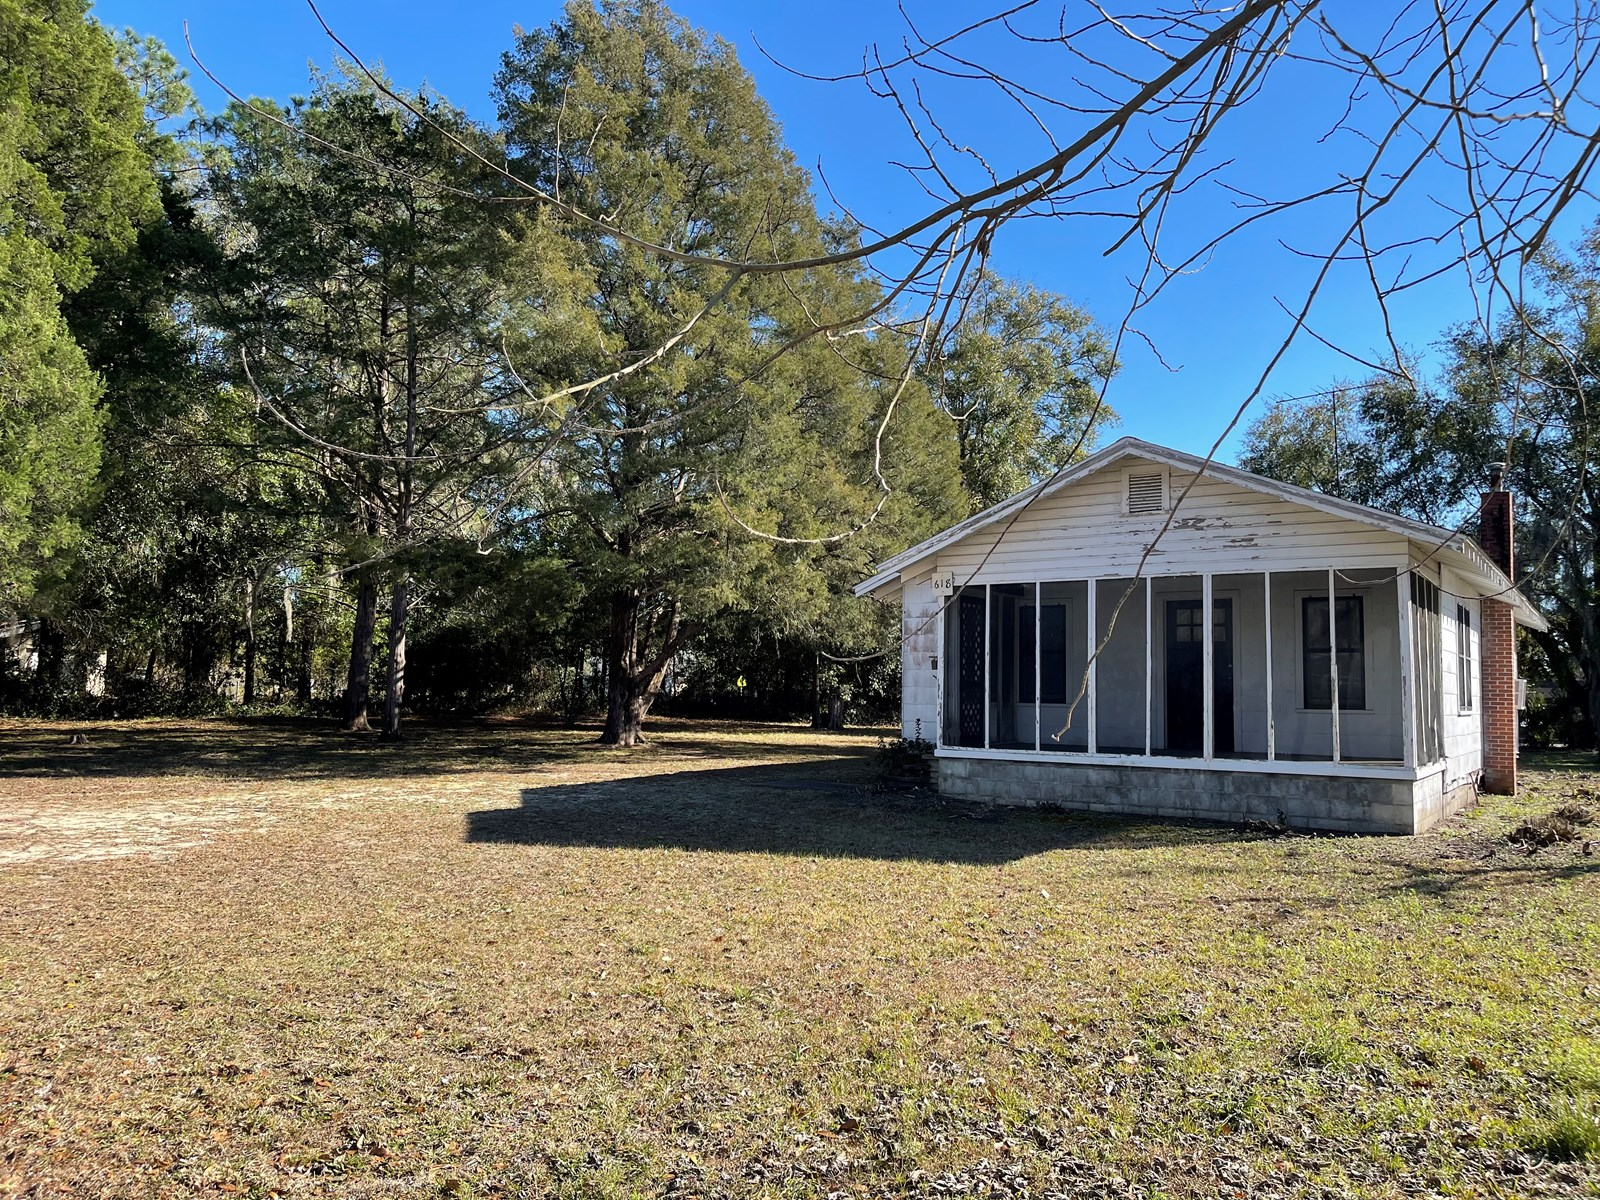 RESIDENCE/OFFICE BUILDING FOR SALE IN LAKE CITY, FLORIDA